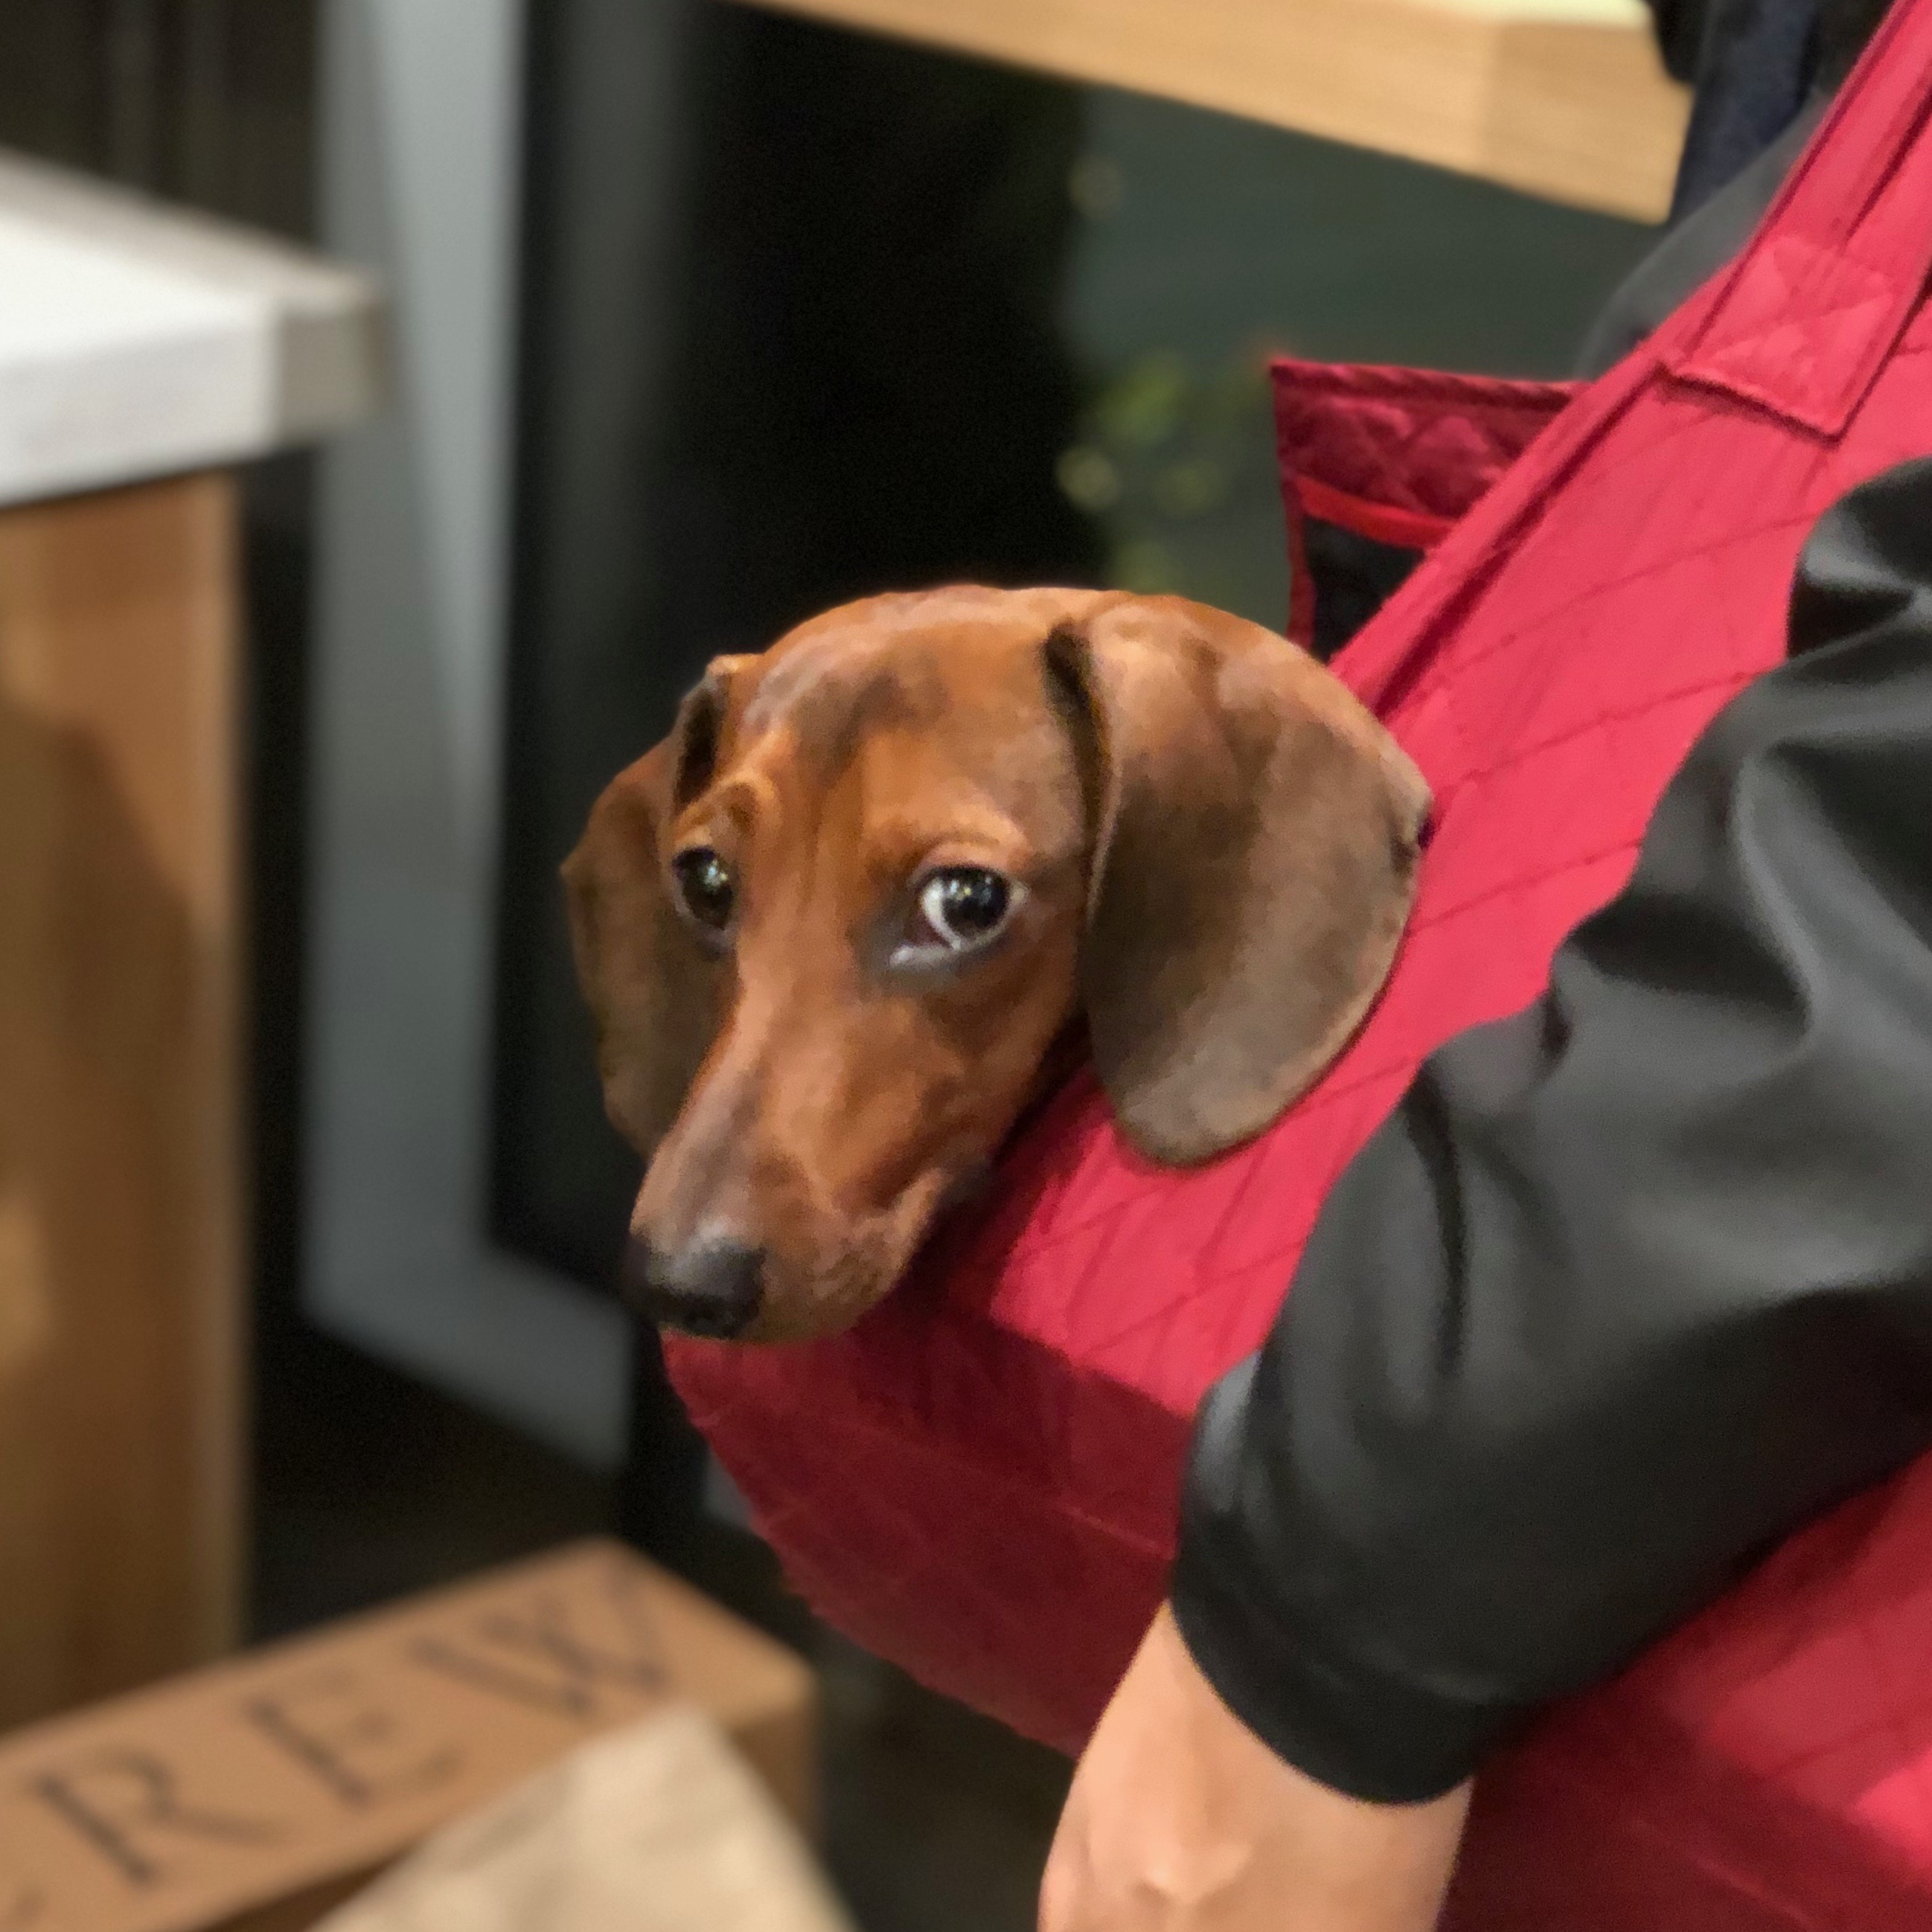 Dachshund In Shoulder Bag